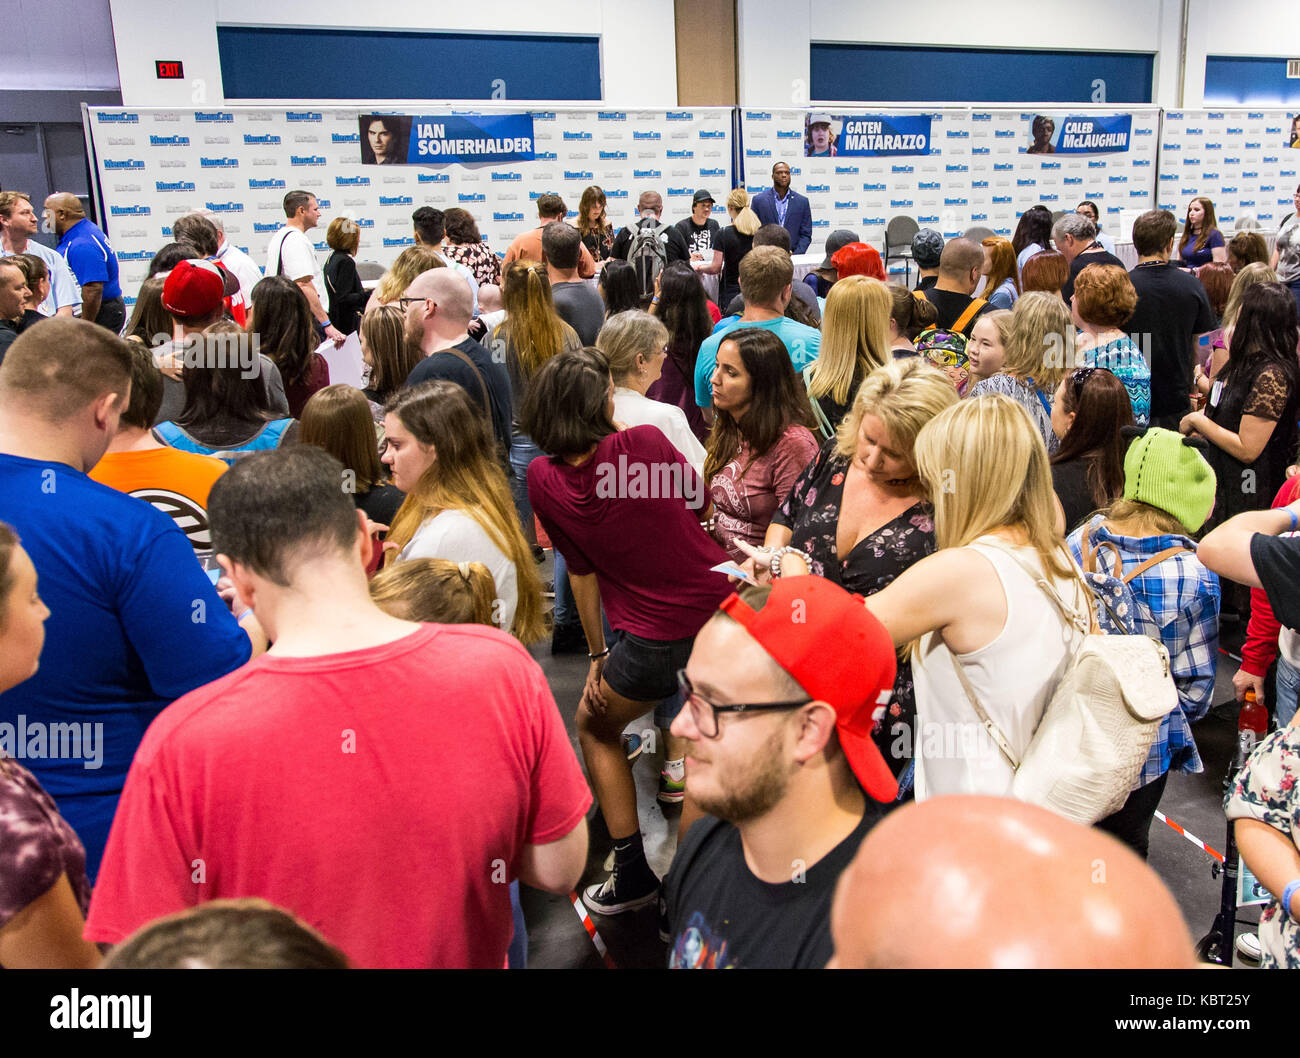 Tampa florida usa 30th sep 2017 fans waiting to meet ian stock 30th sep 2017 fans waiting to meet ian somerhalder at megacon being held at the tampa convention center in tampa florida del mecumcsmalamy live news m4hsunfo